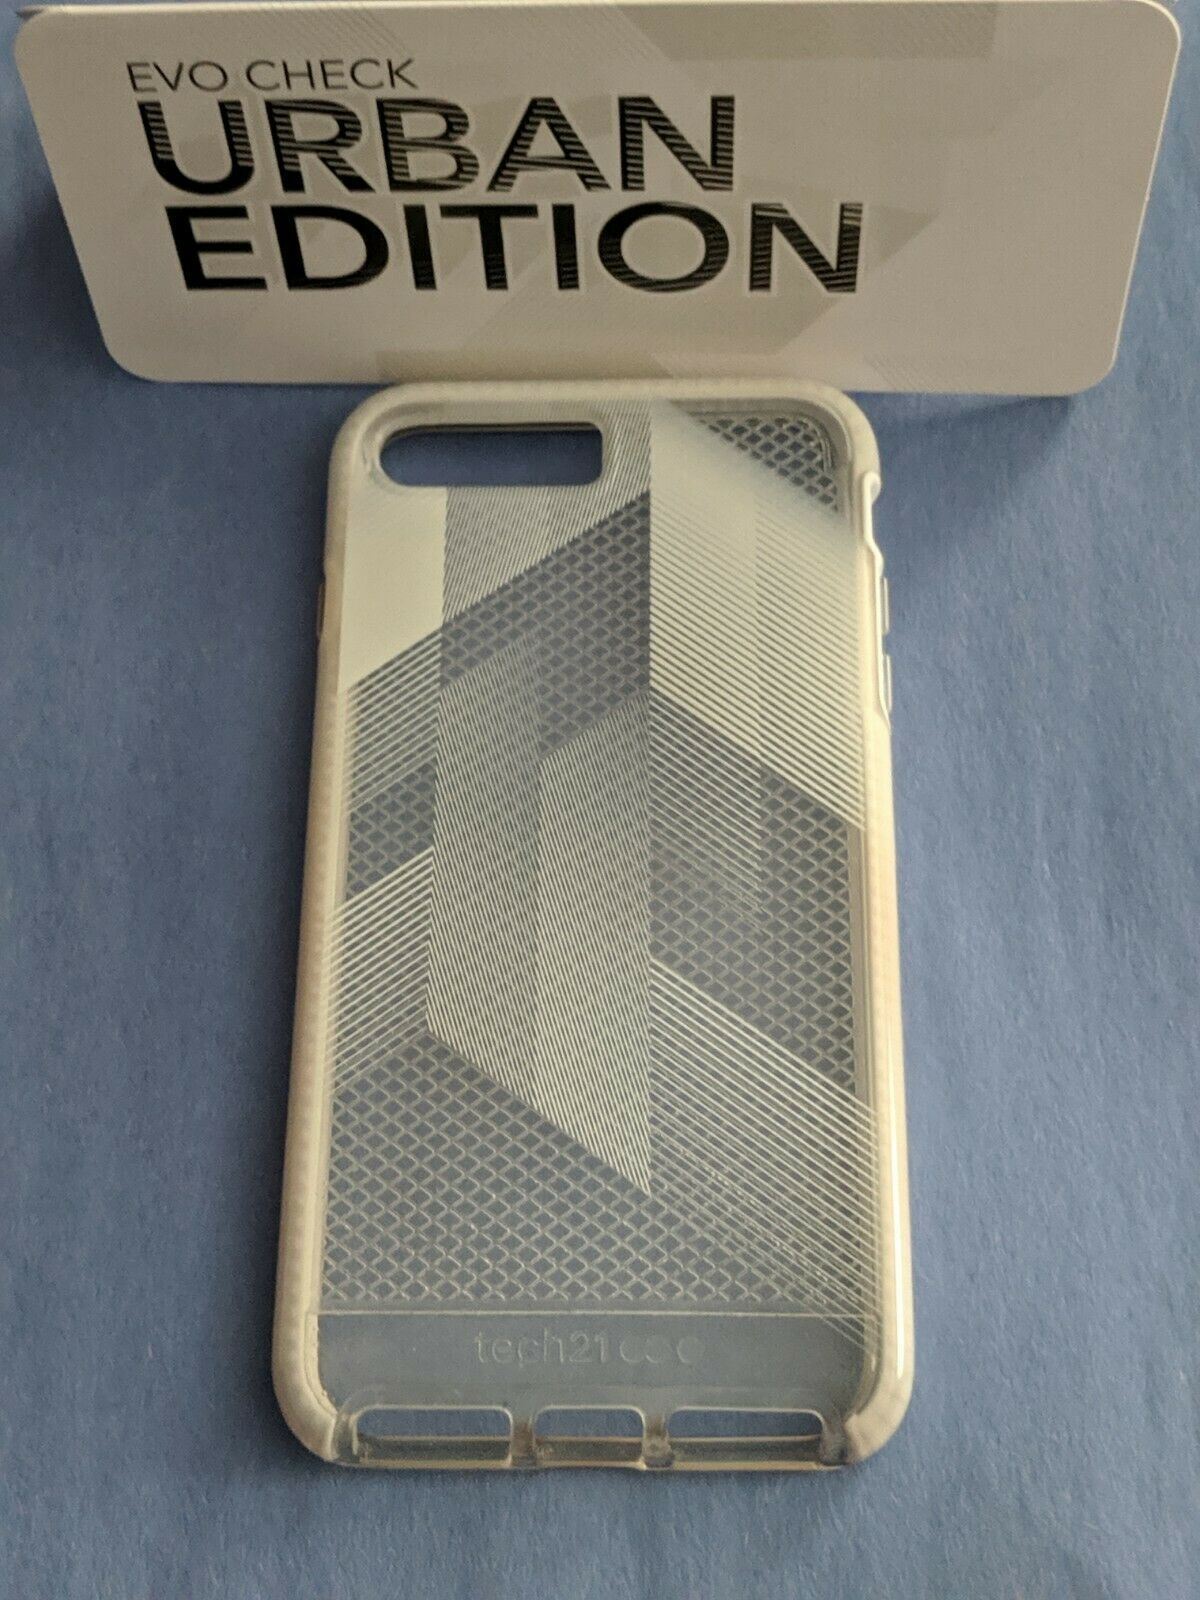 outlet store 4f521 6c4eb Details about Tech21 - Evo Check Urban Edition Case for Apple iPhone ...